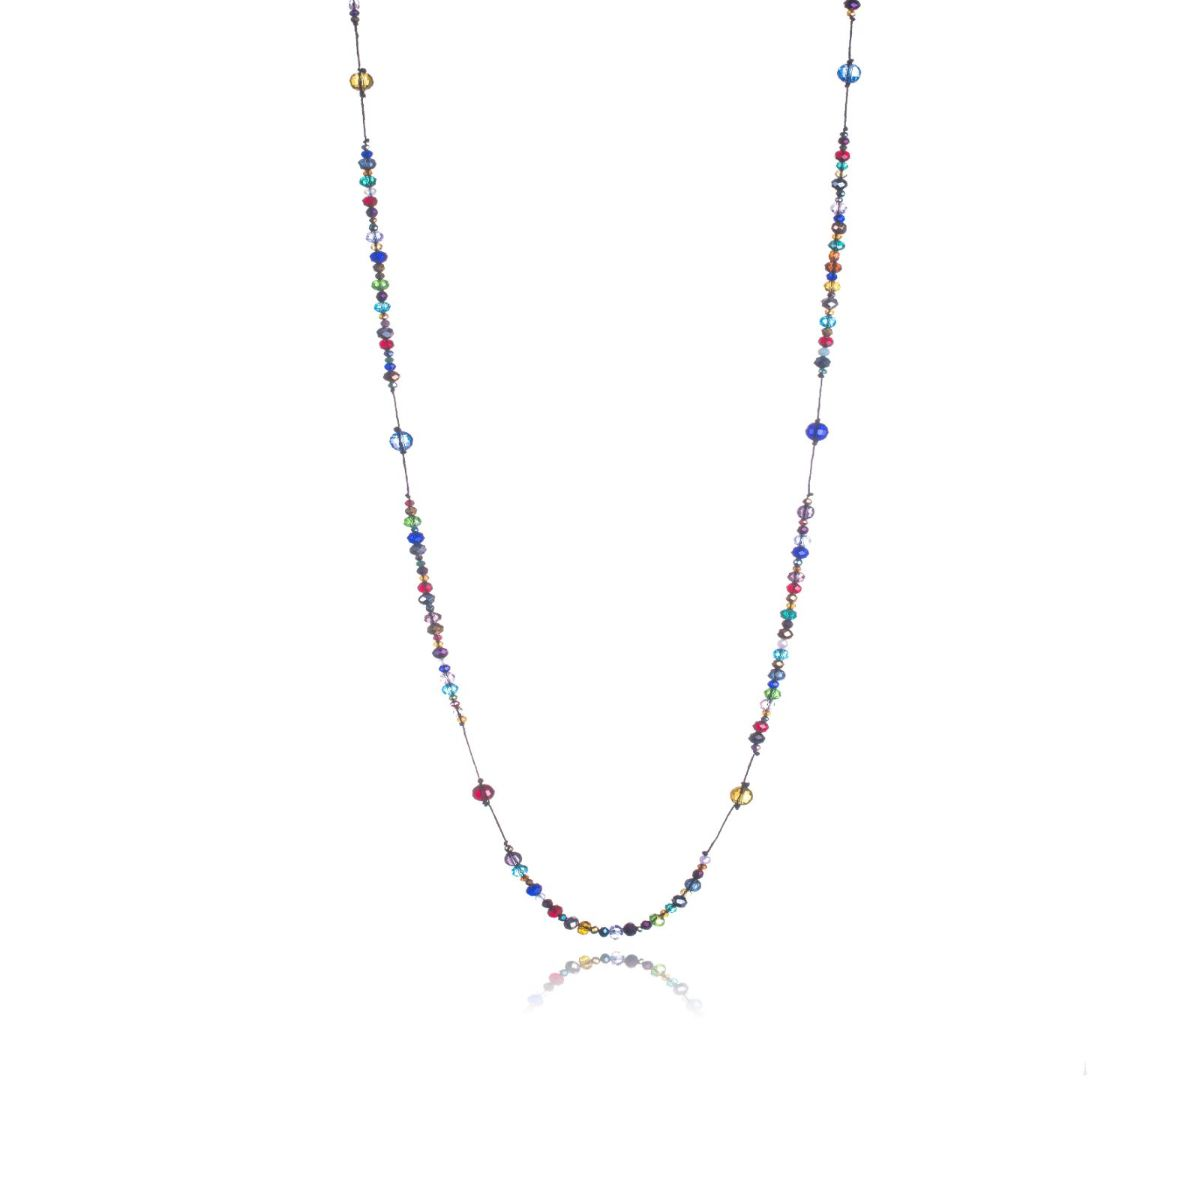 Paris long string necklace with faceted Czech crystals of different sizes and colors